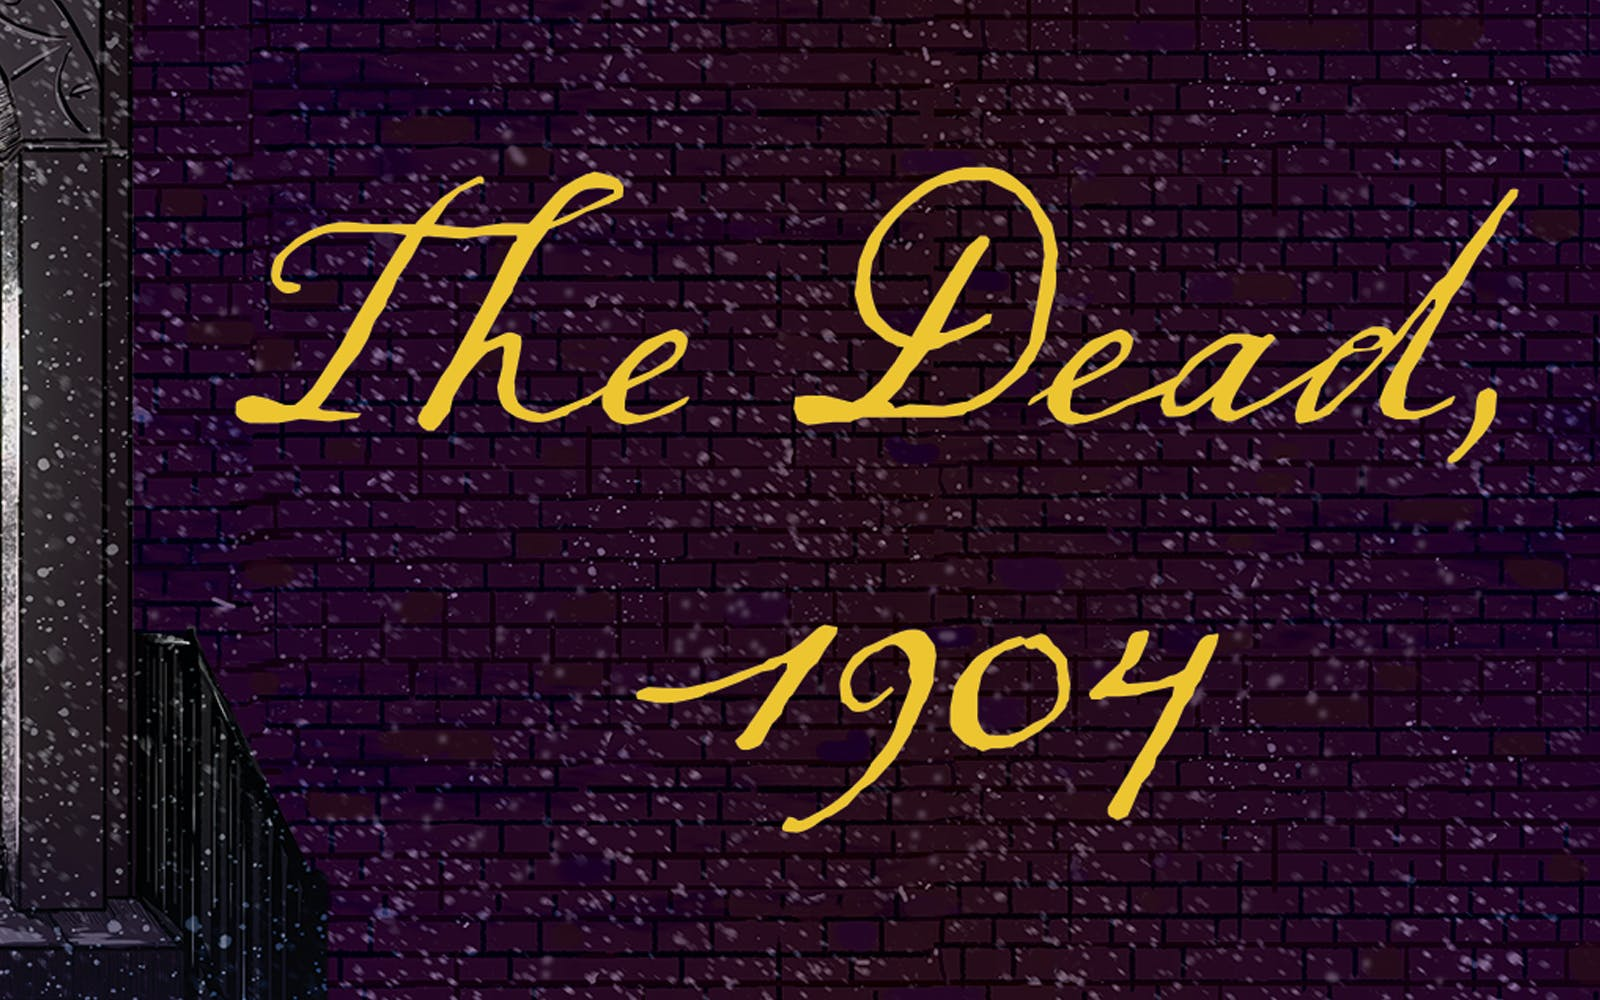 the dead, 1904-1